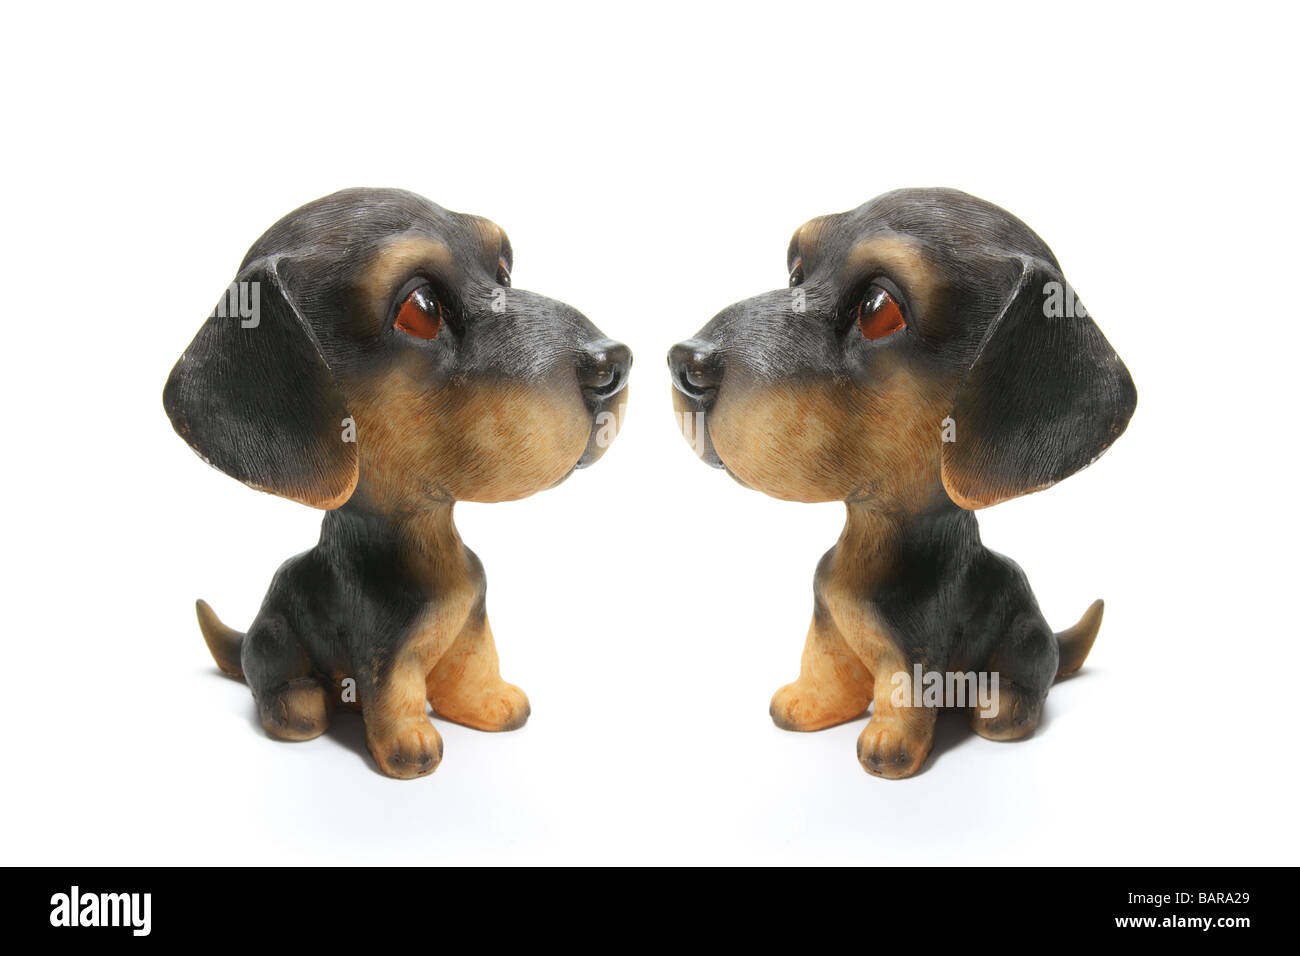 Dog Figurines Stock Photo